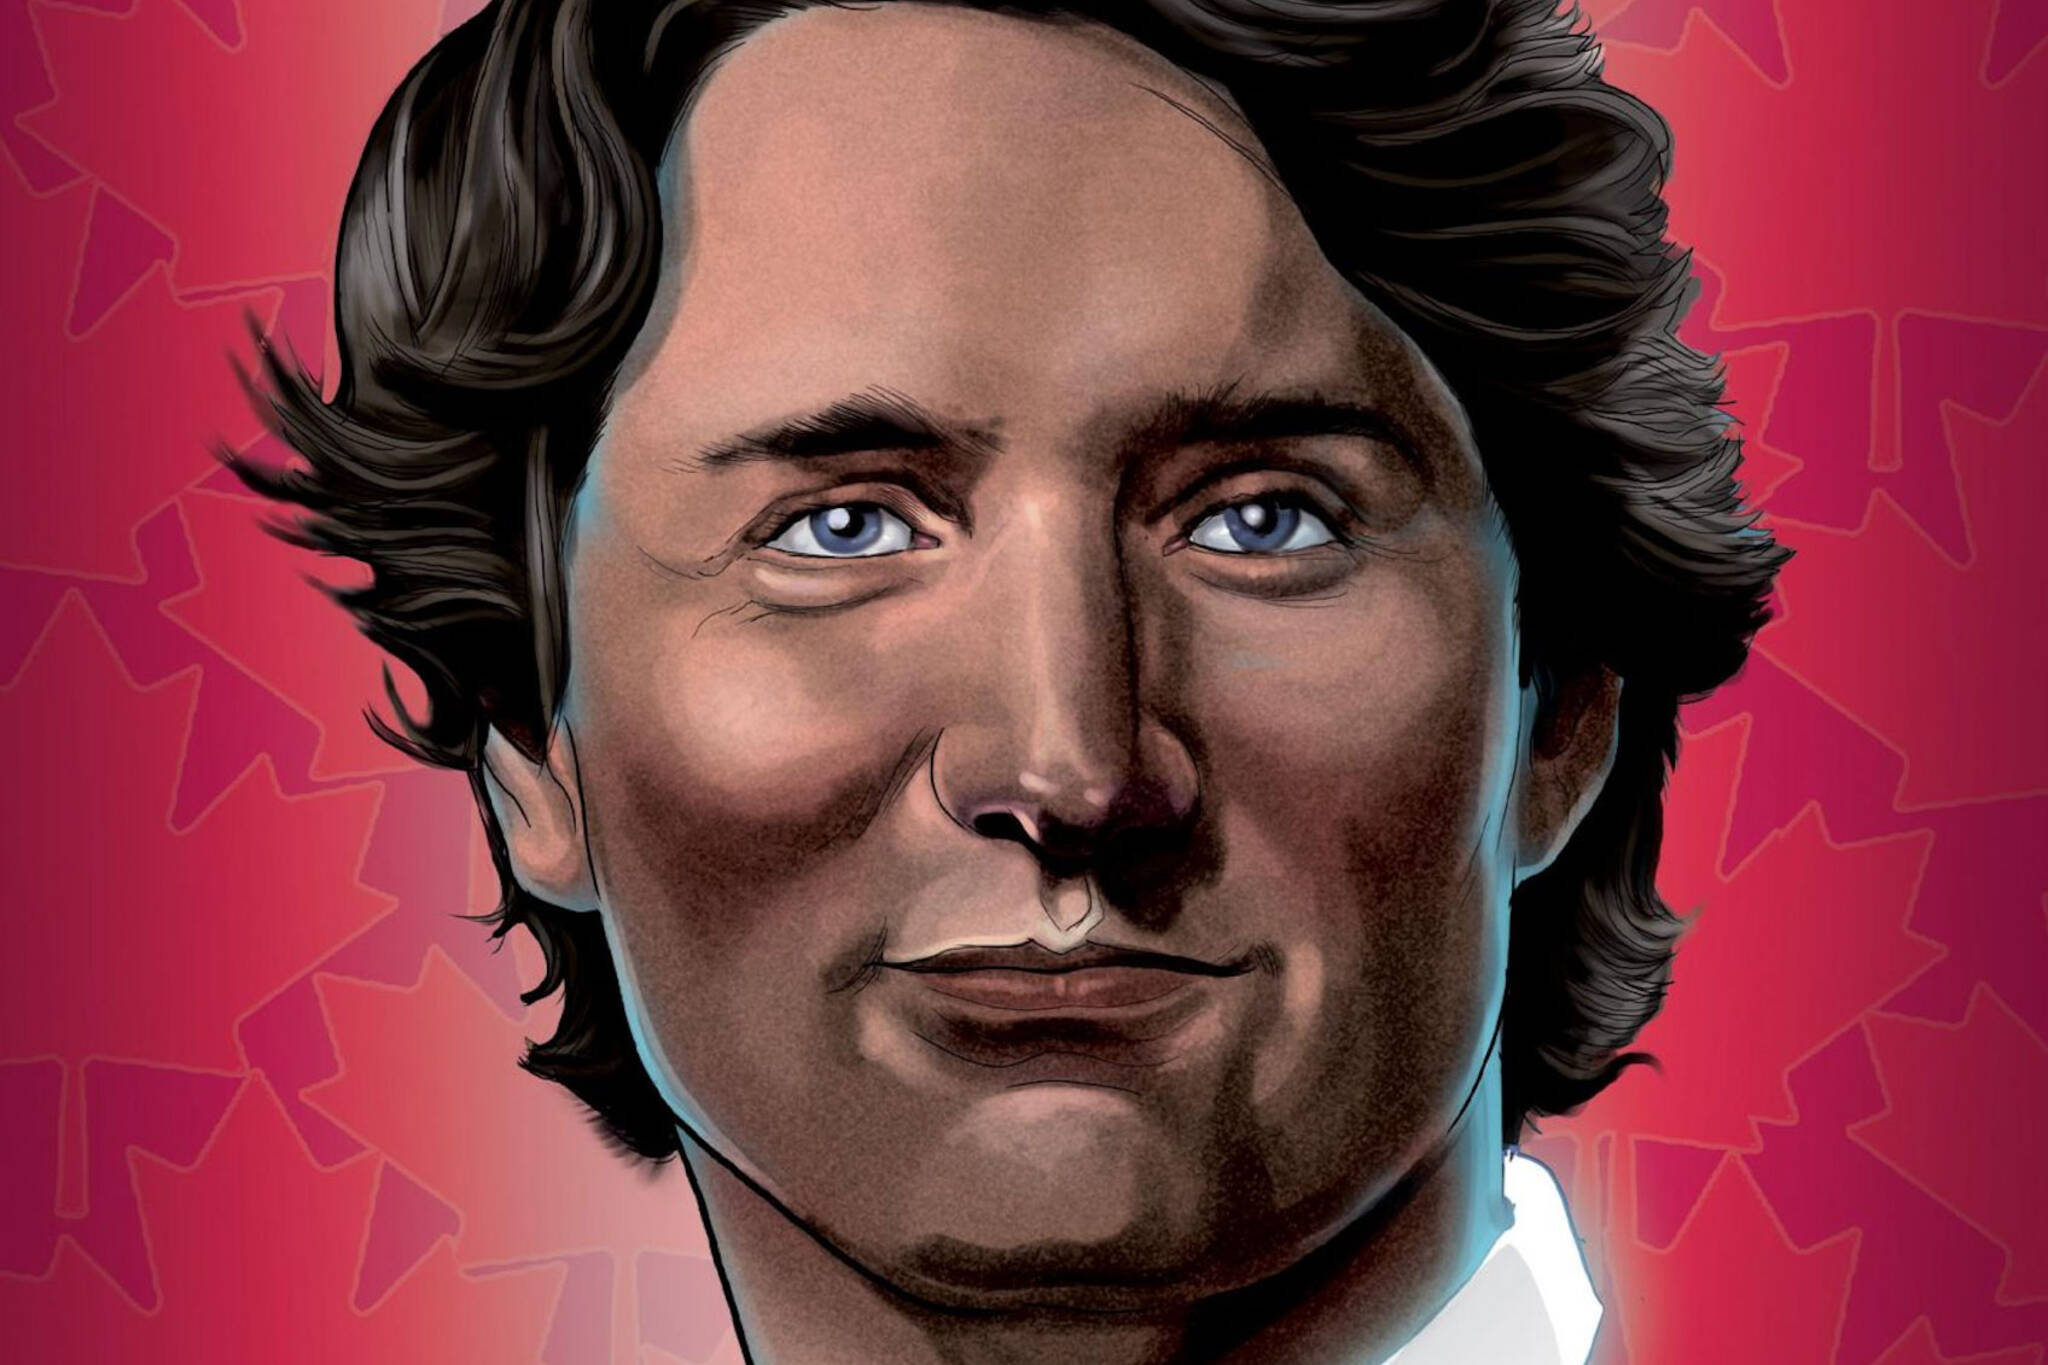 justin trudeau comic book